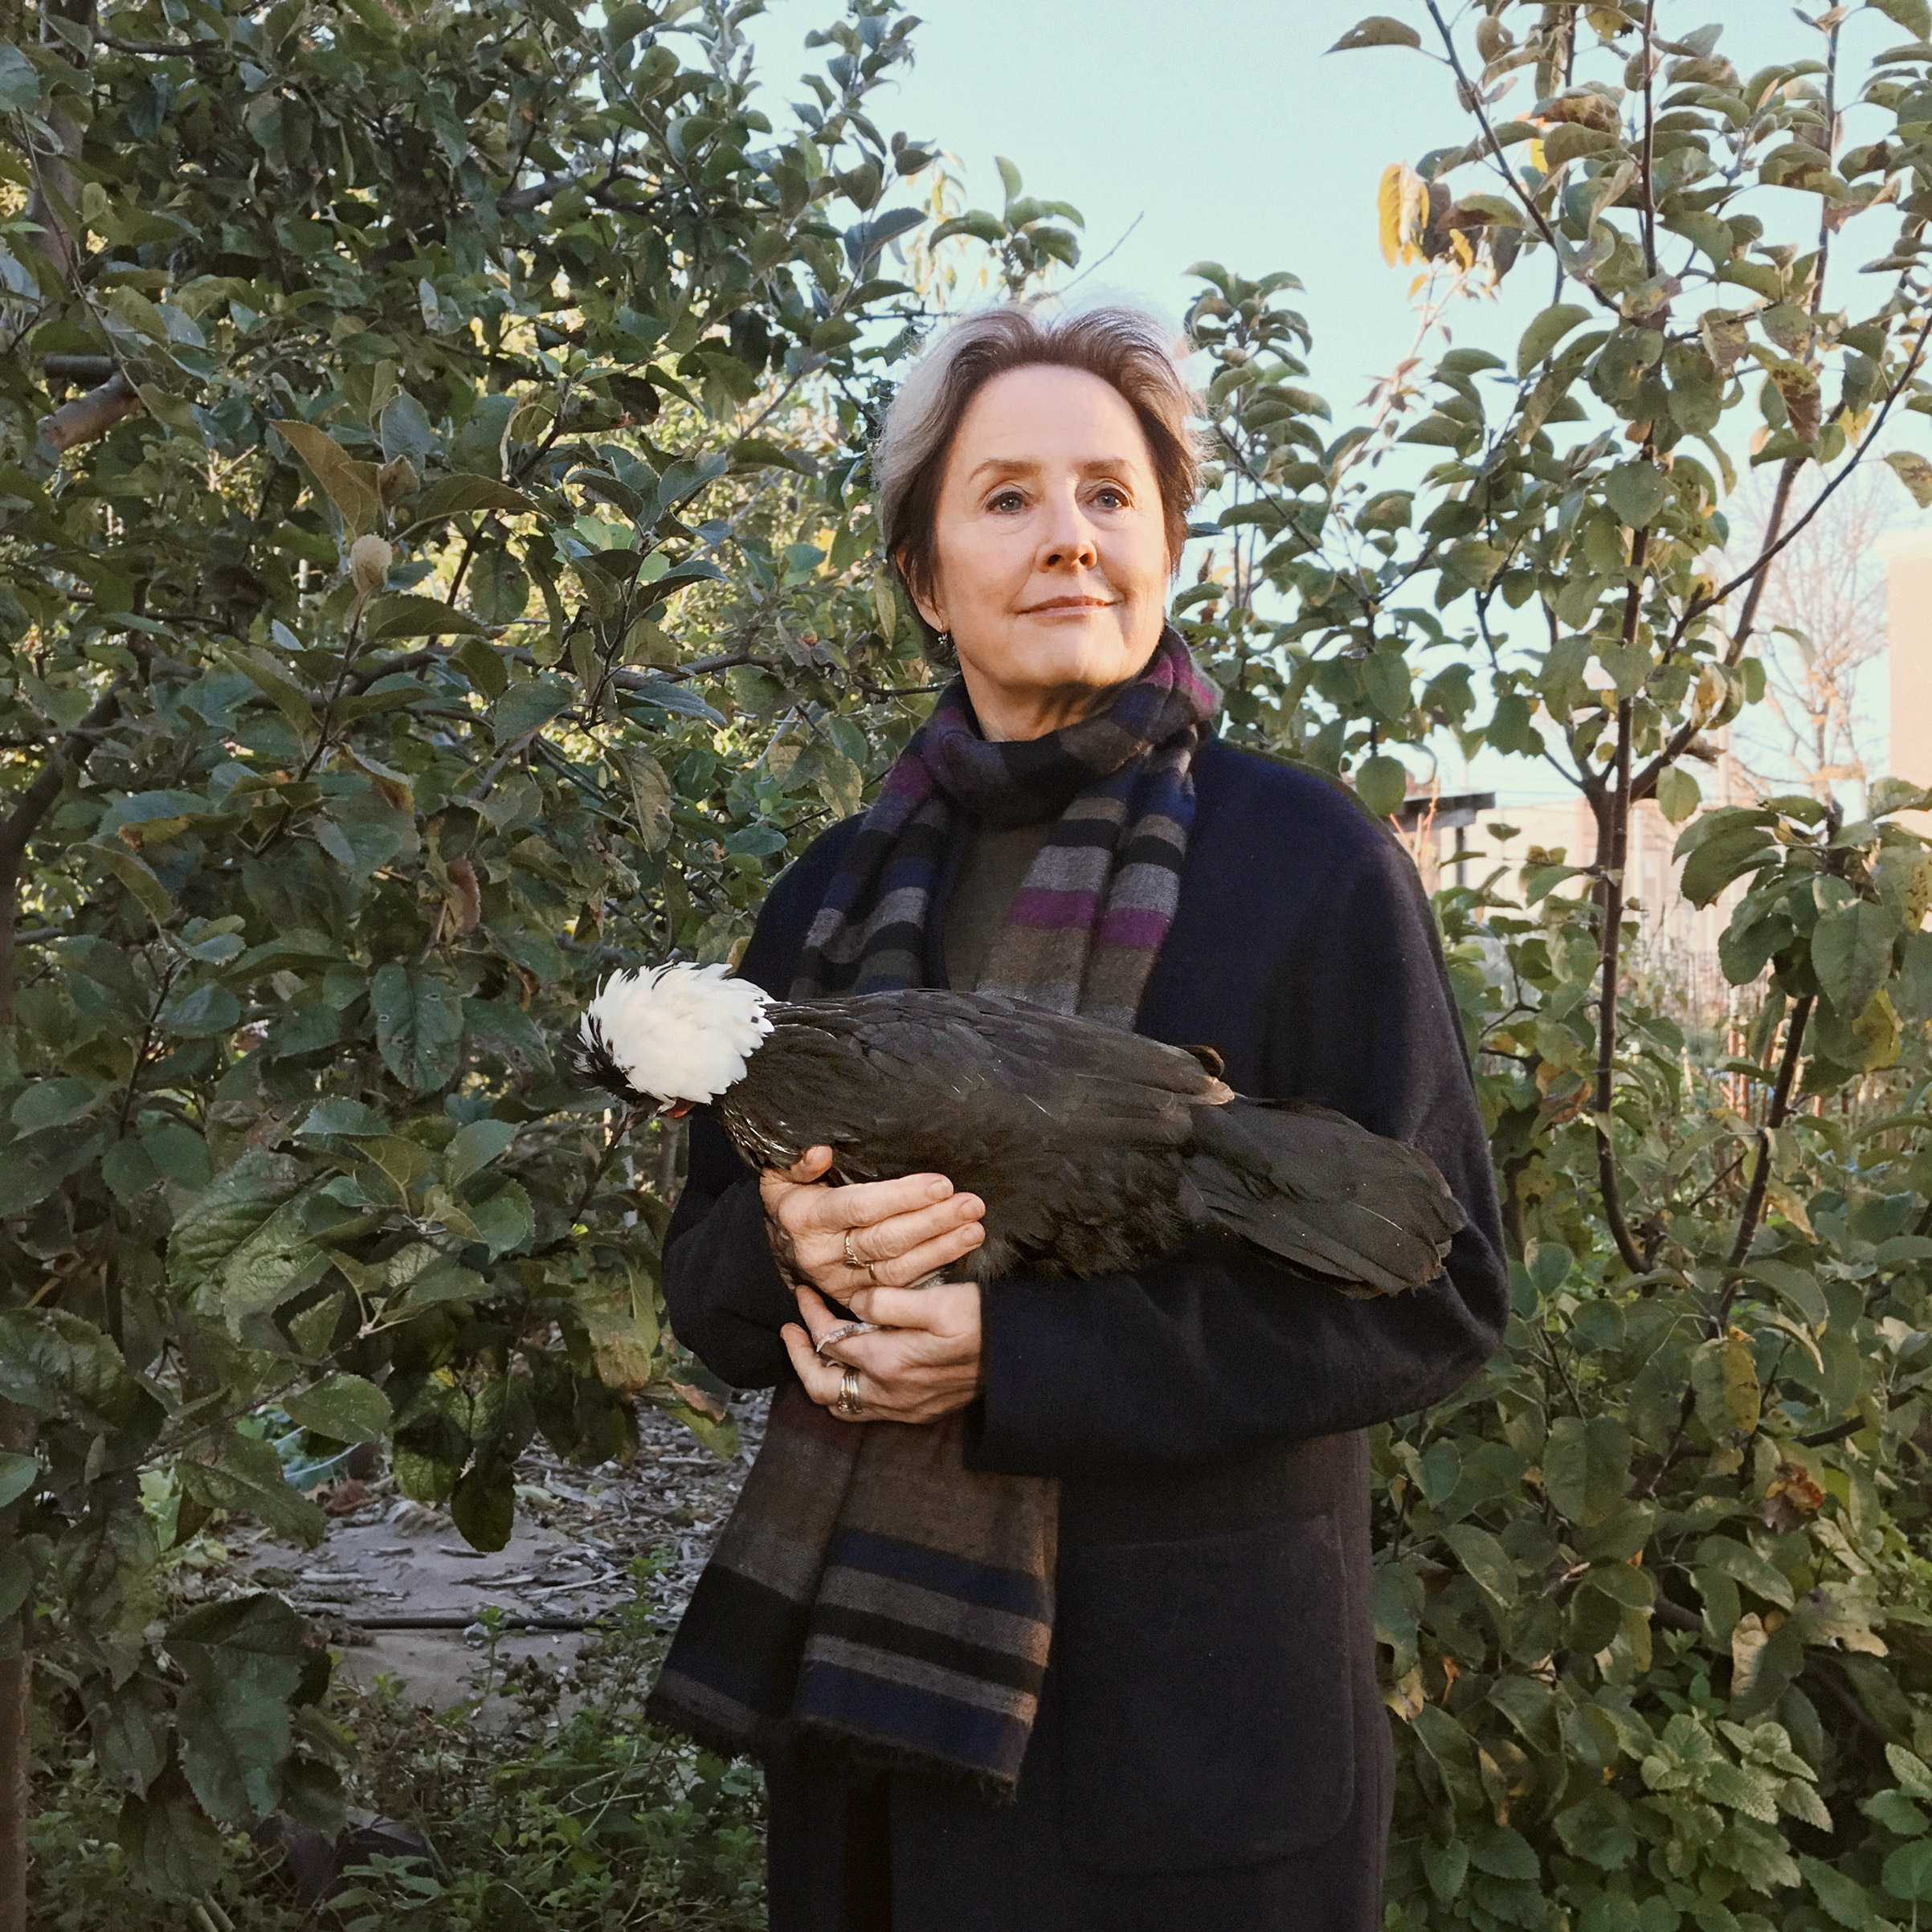 Portrait of Alice Waters, photographed at the Edible Schoolyard in P.S. 216 in New York City, November 7, 2016.